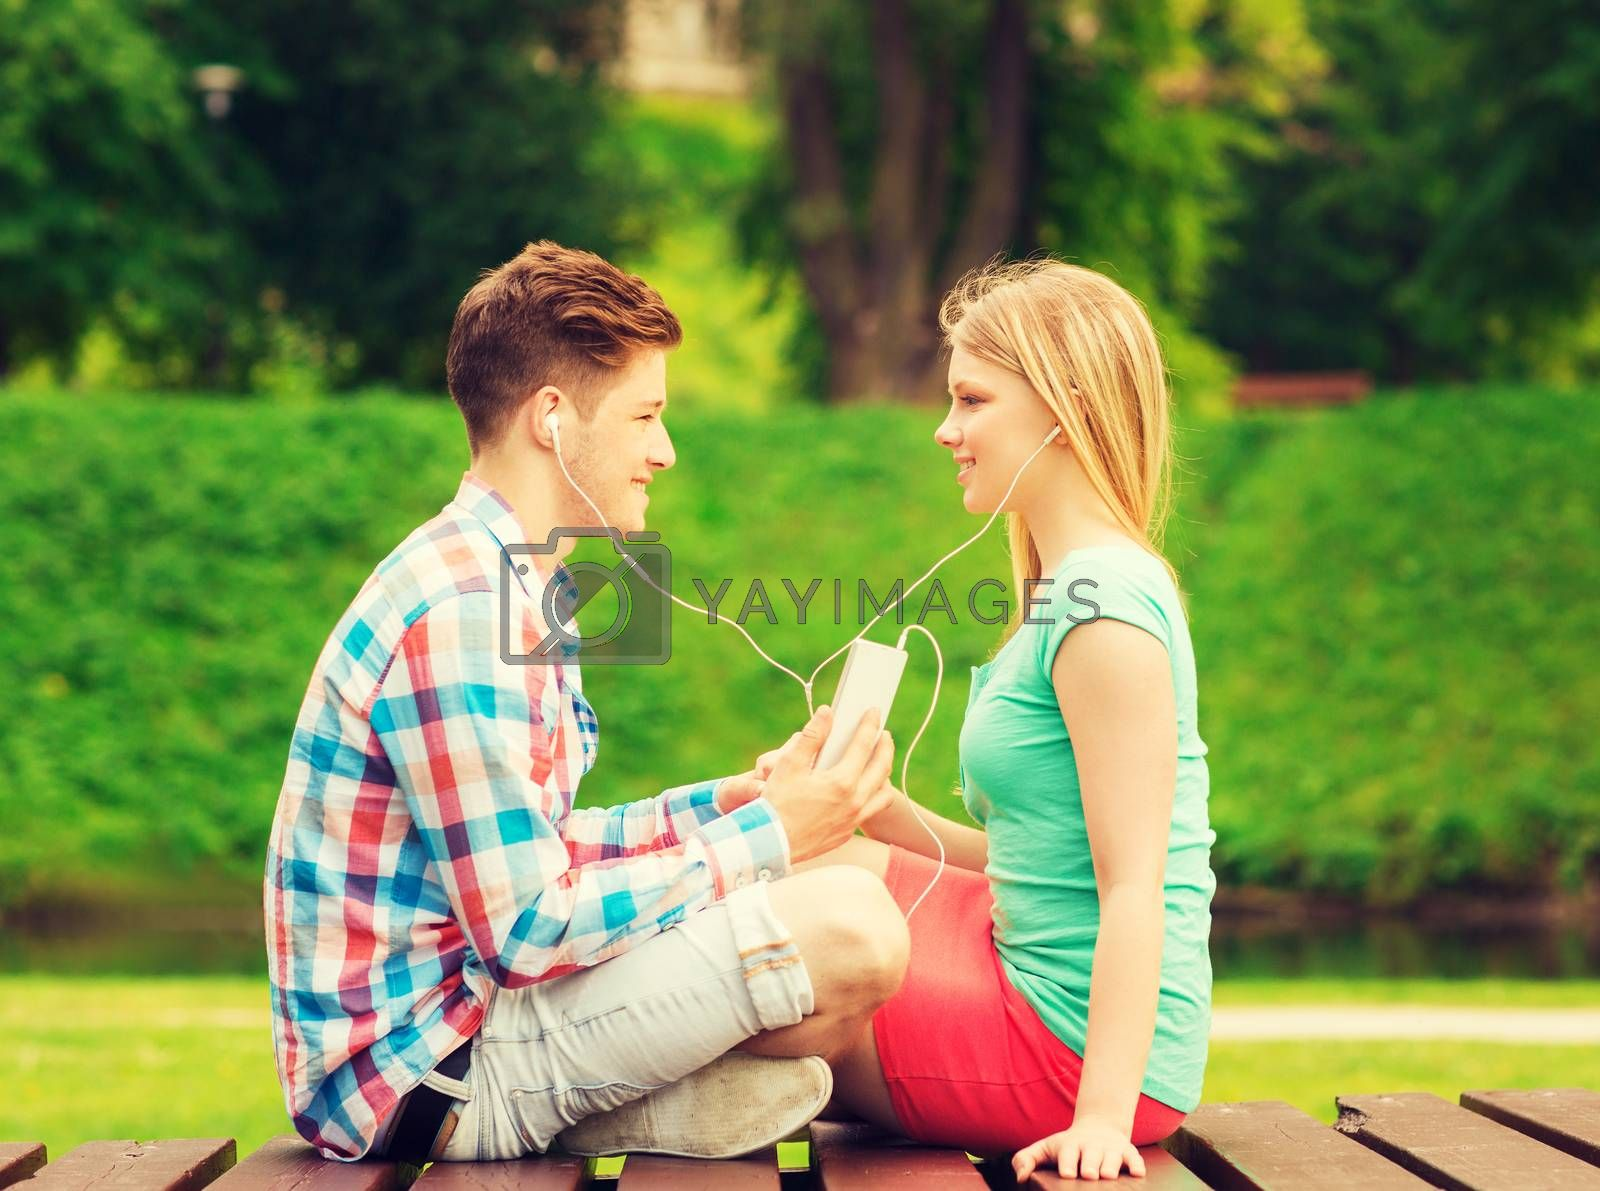 summer, vacation, holidays, technology and friendship concept - smiling couple with smartphone and earphones sitting on bench in park